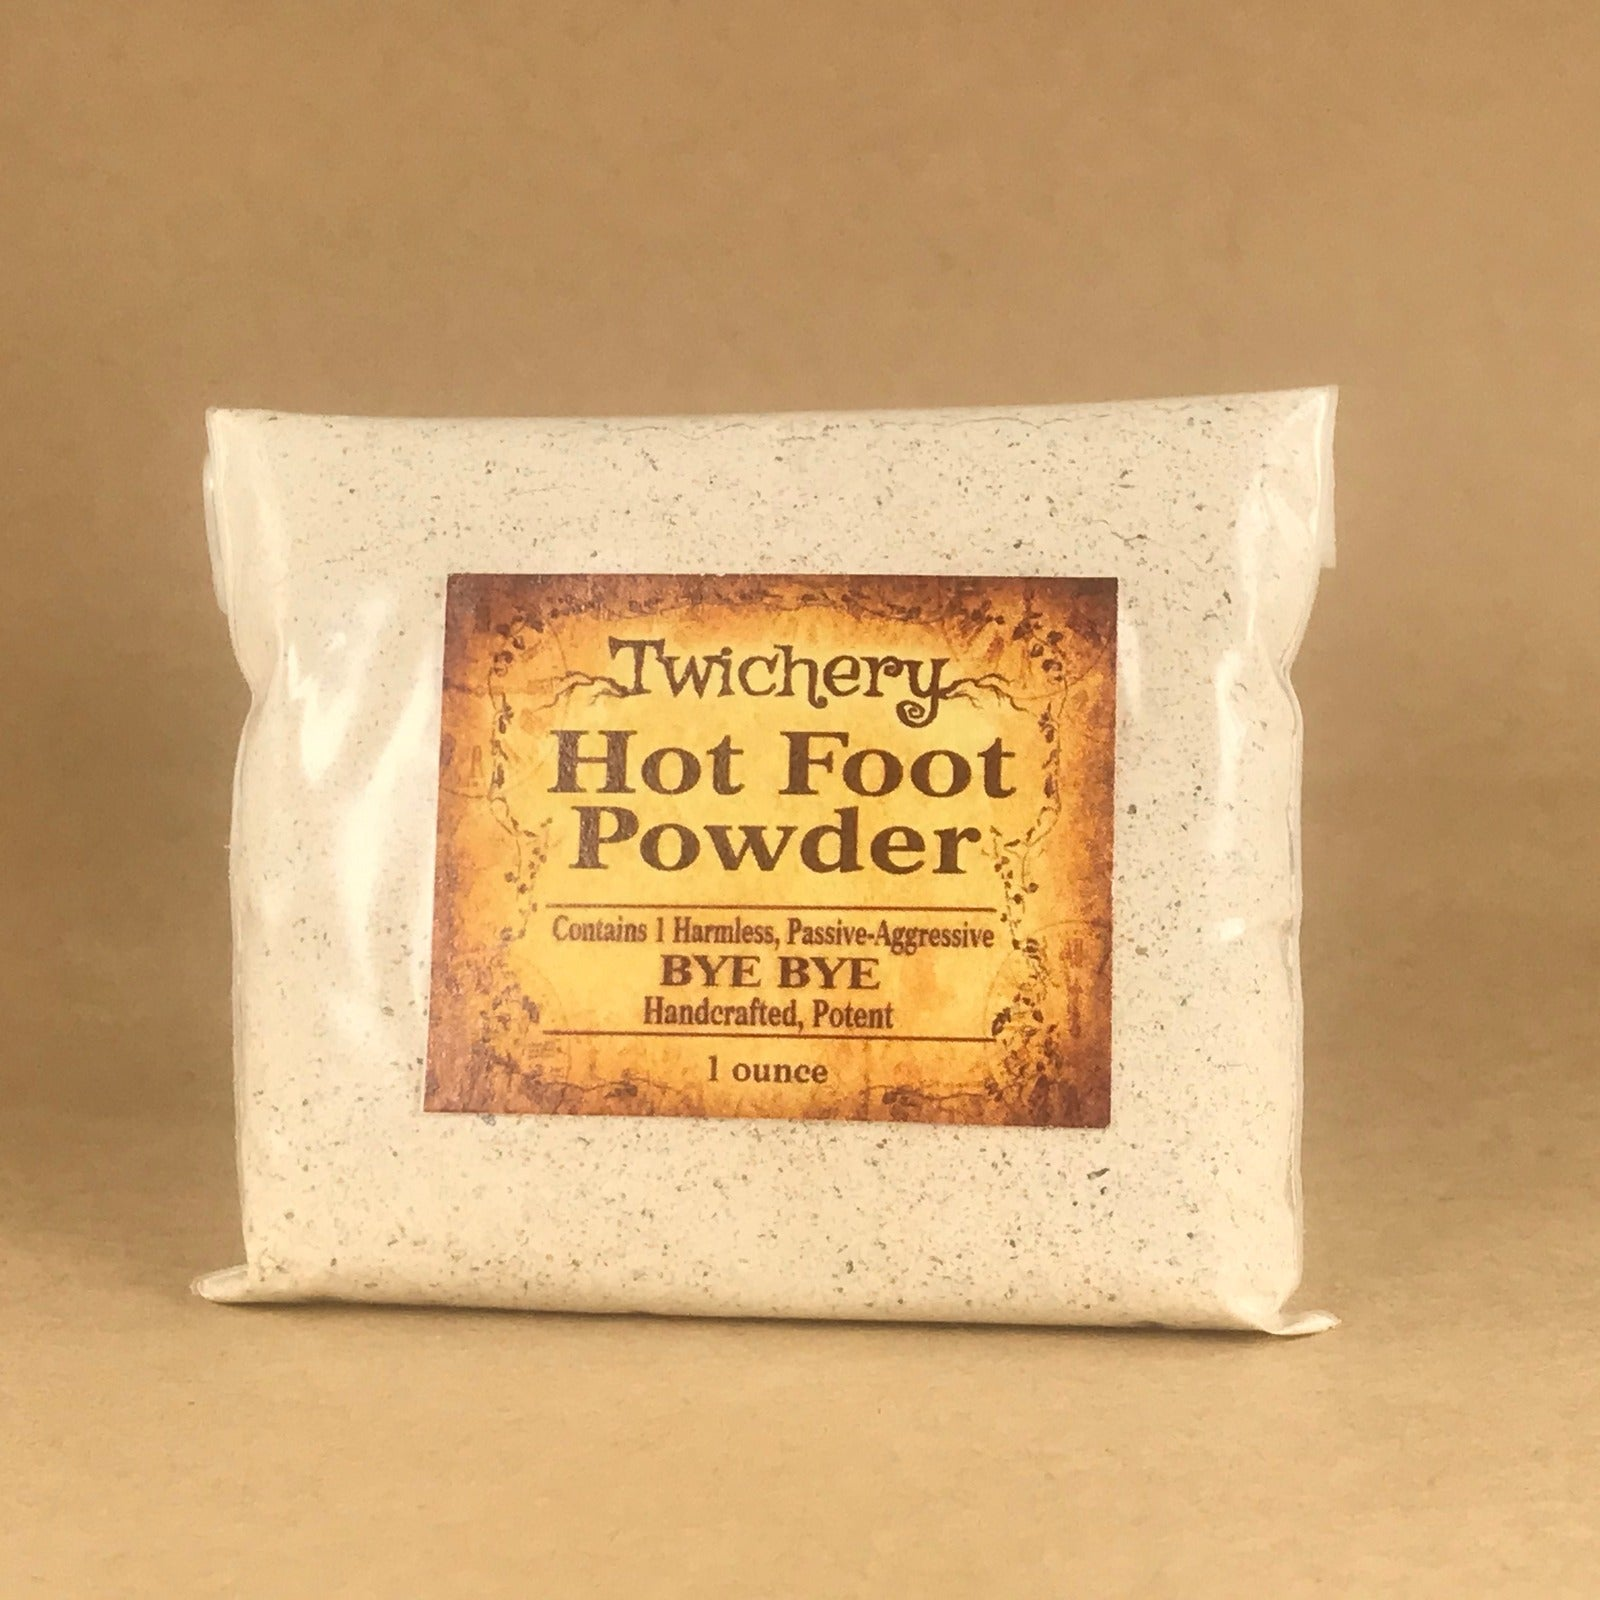 Twichery Hot Foot Powder: Contains One Harmless, Passive-Aggressive BYE BYE!